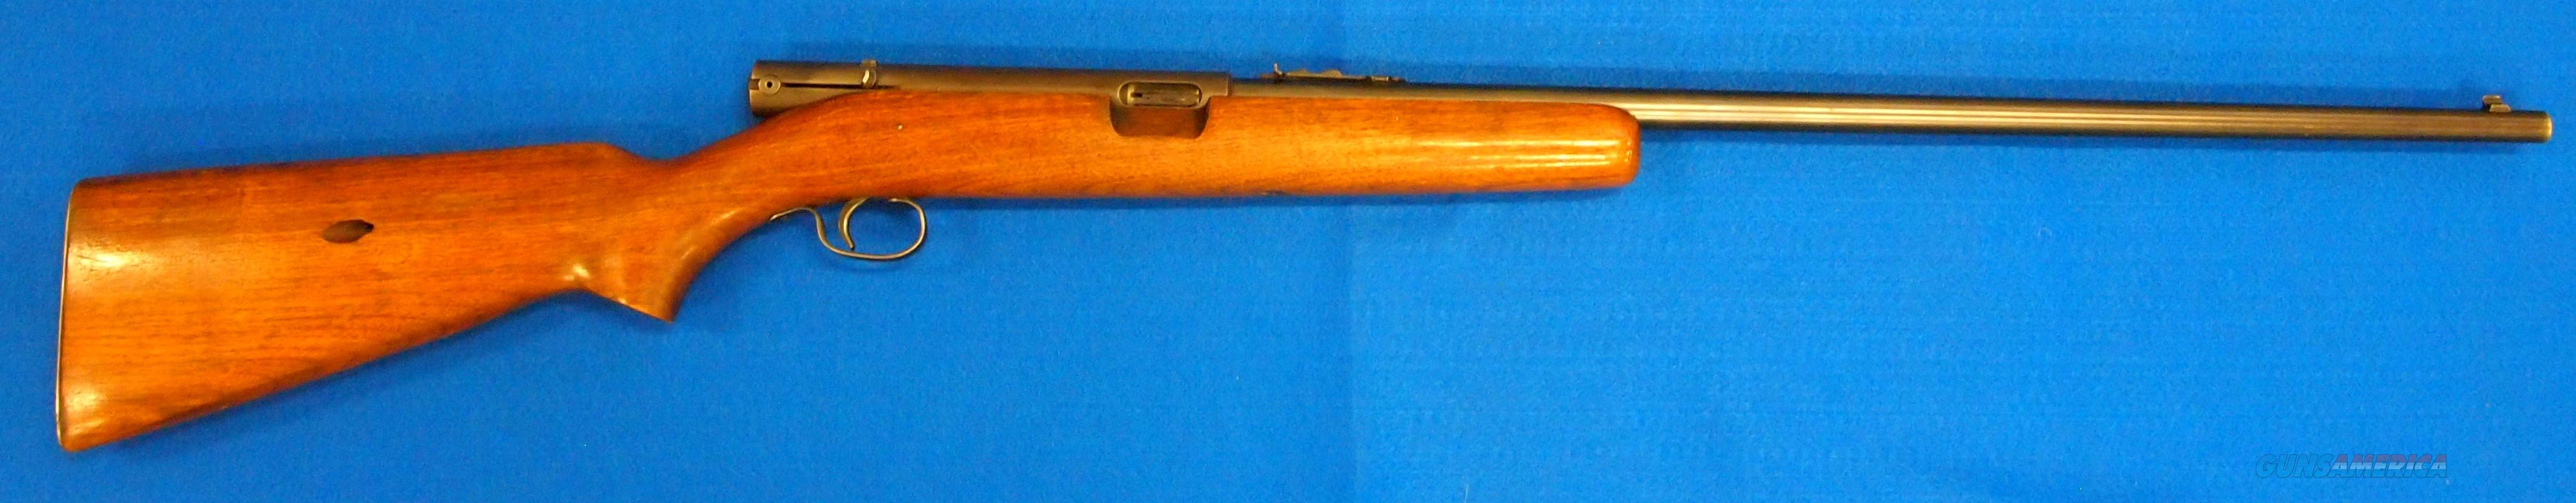 WINCHESTER MODEL 74 22LR (MFG 1940)  Guns > Rifles > Winchester Rifles - Modern Bolt/Auto/Single > Autoloaders